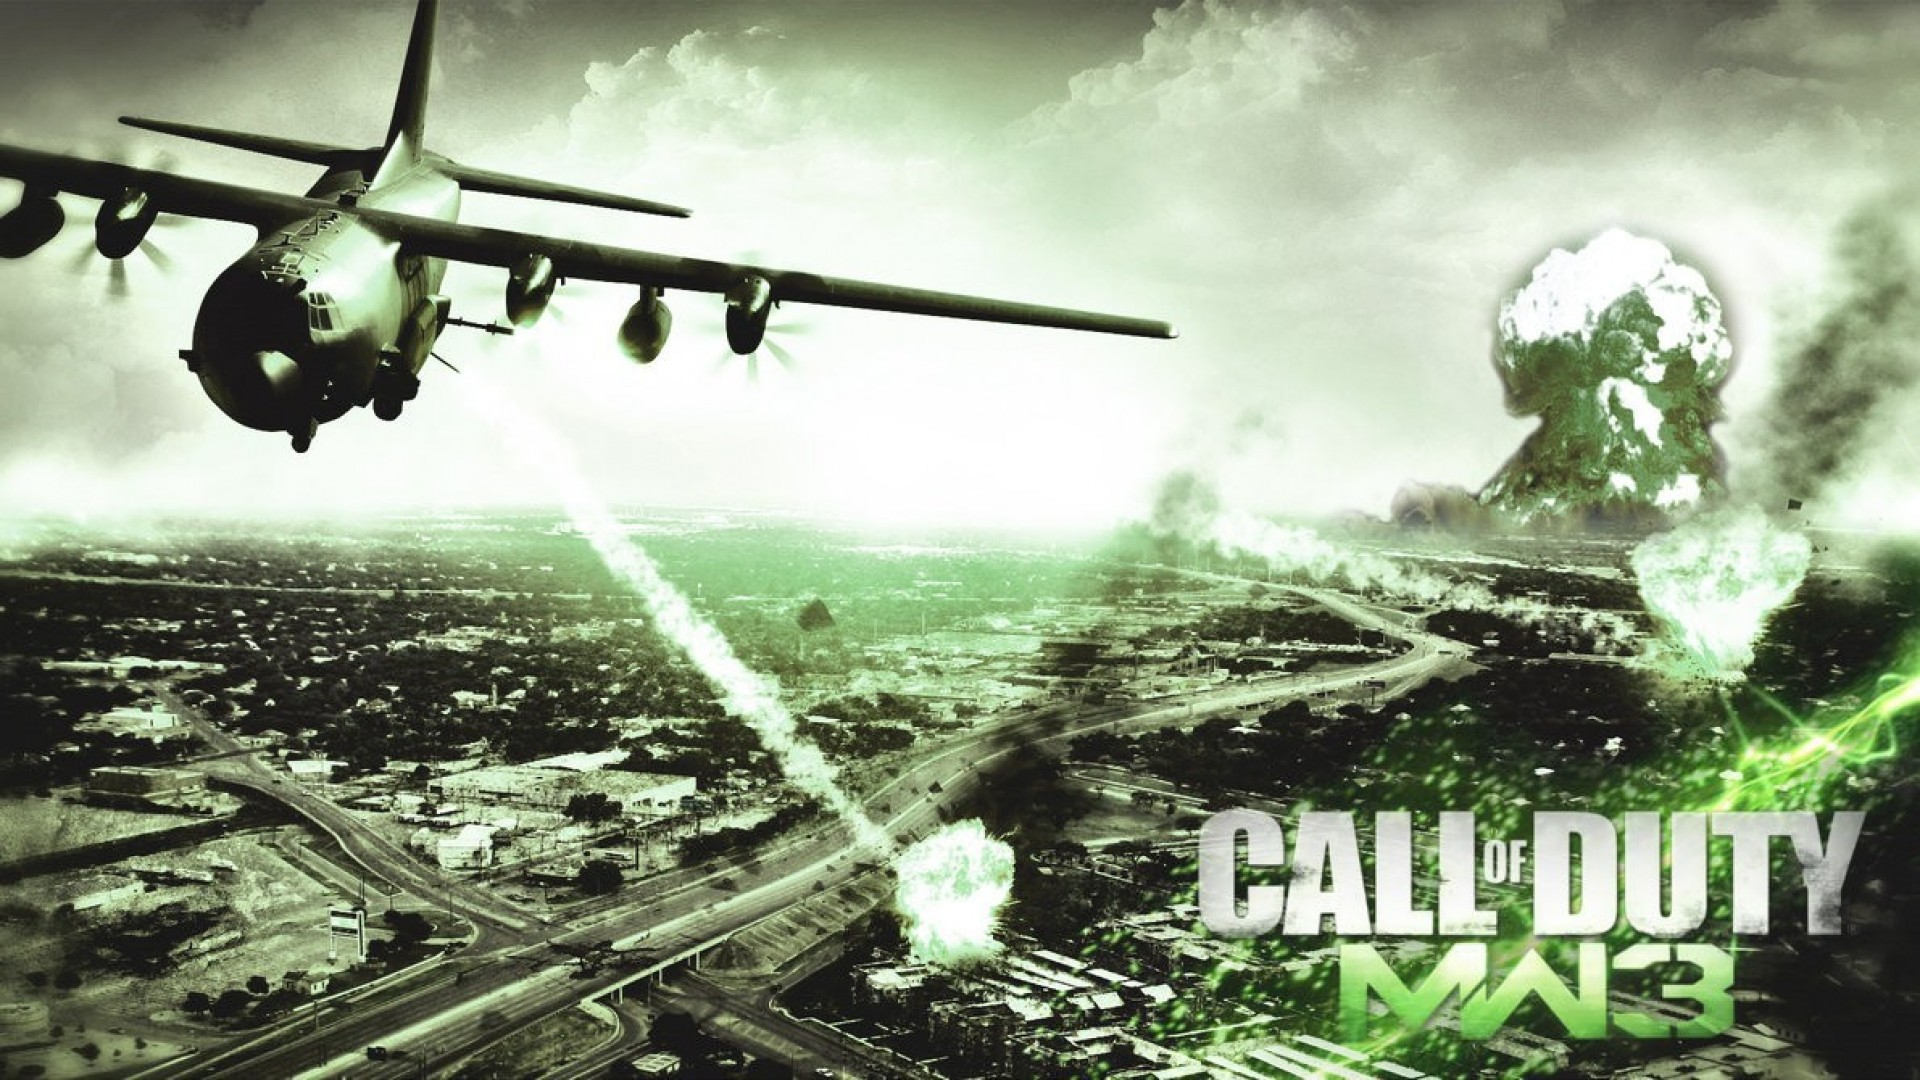 Call of Duty Modern Warfare 3 wallpaper 26